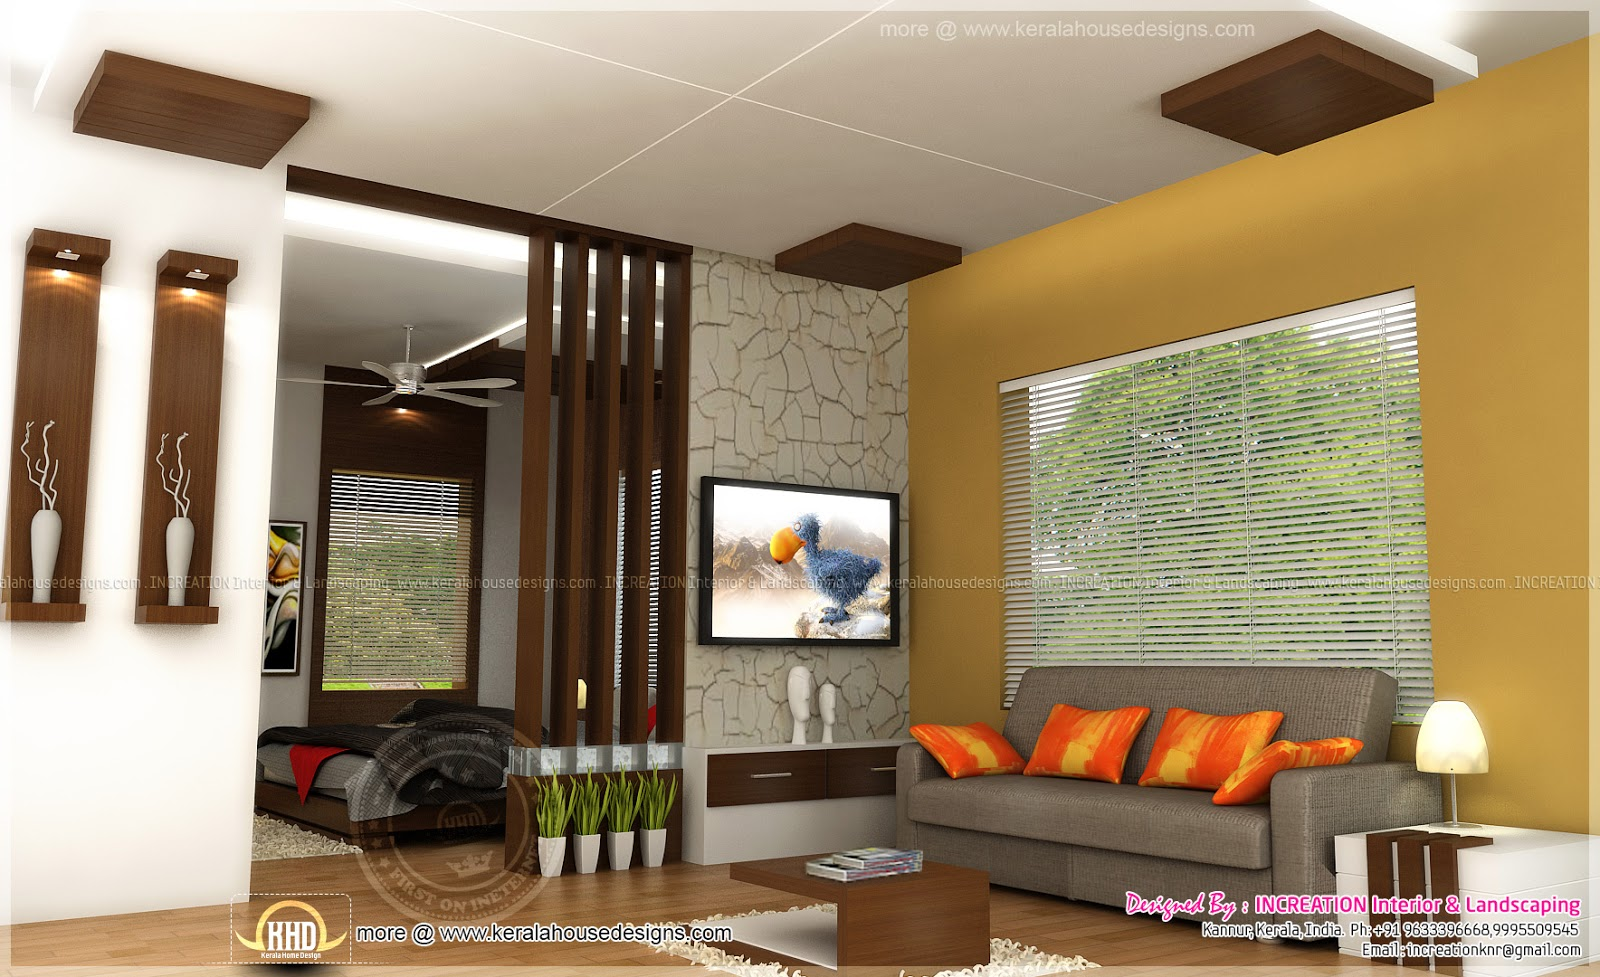 Interior designs from kannur kerala kerala home design for Small indian house interior design photos